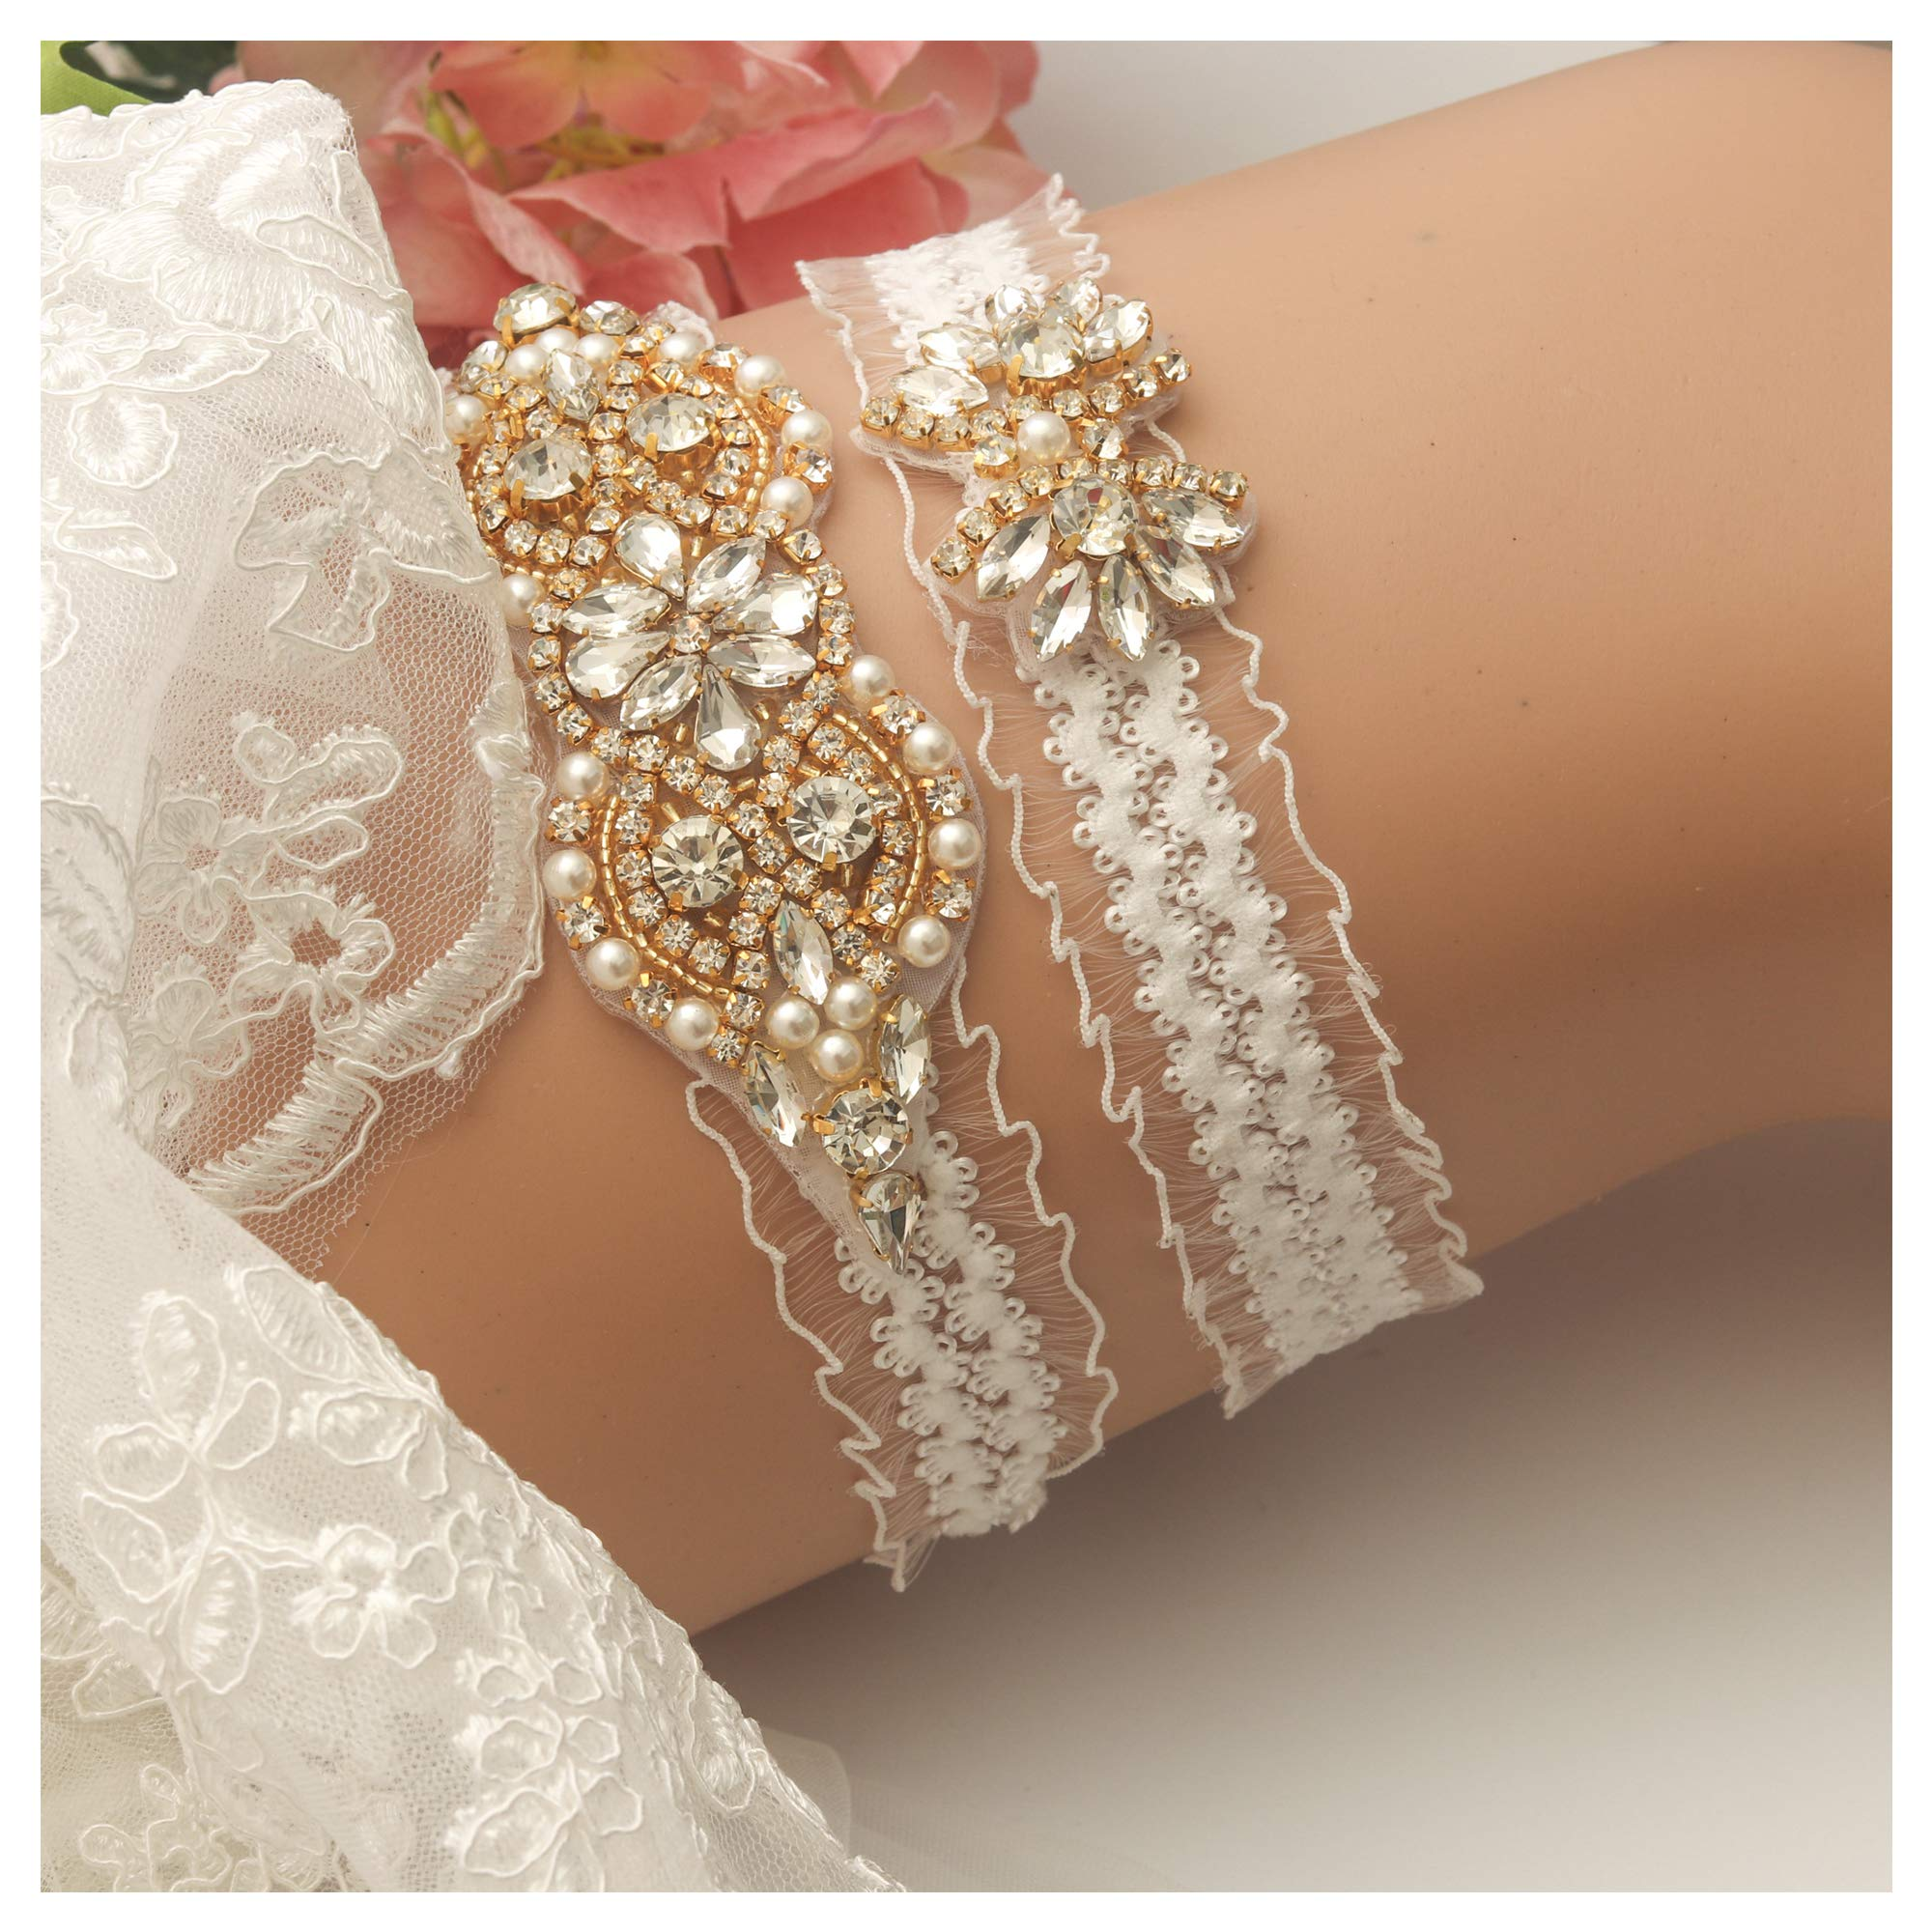 yanstar Wedding Bridal Garter White Stretch Lace Bridal Garter Sets with Gold Rhinestone Pearl for Wedding and Prom